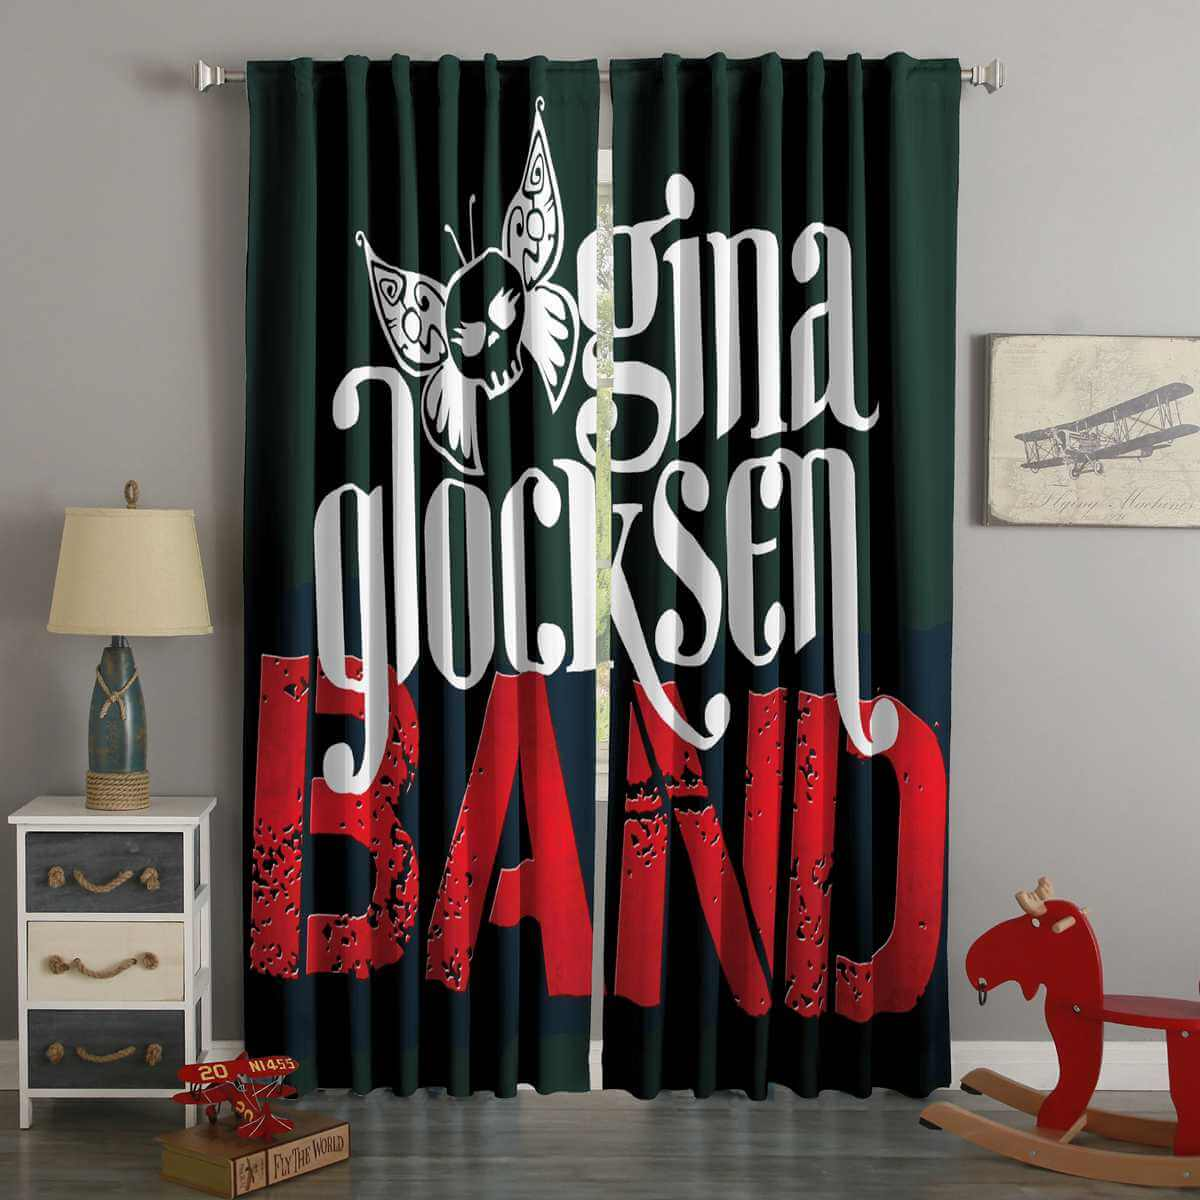 3D Printed Gina Glocksen Band Style Custom Living Room Curtains